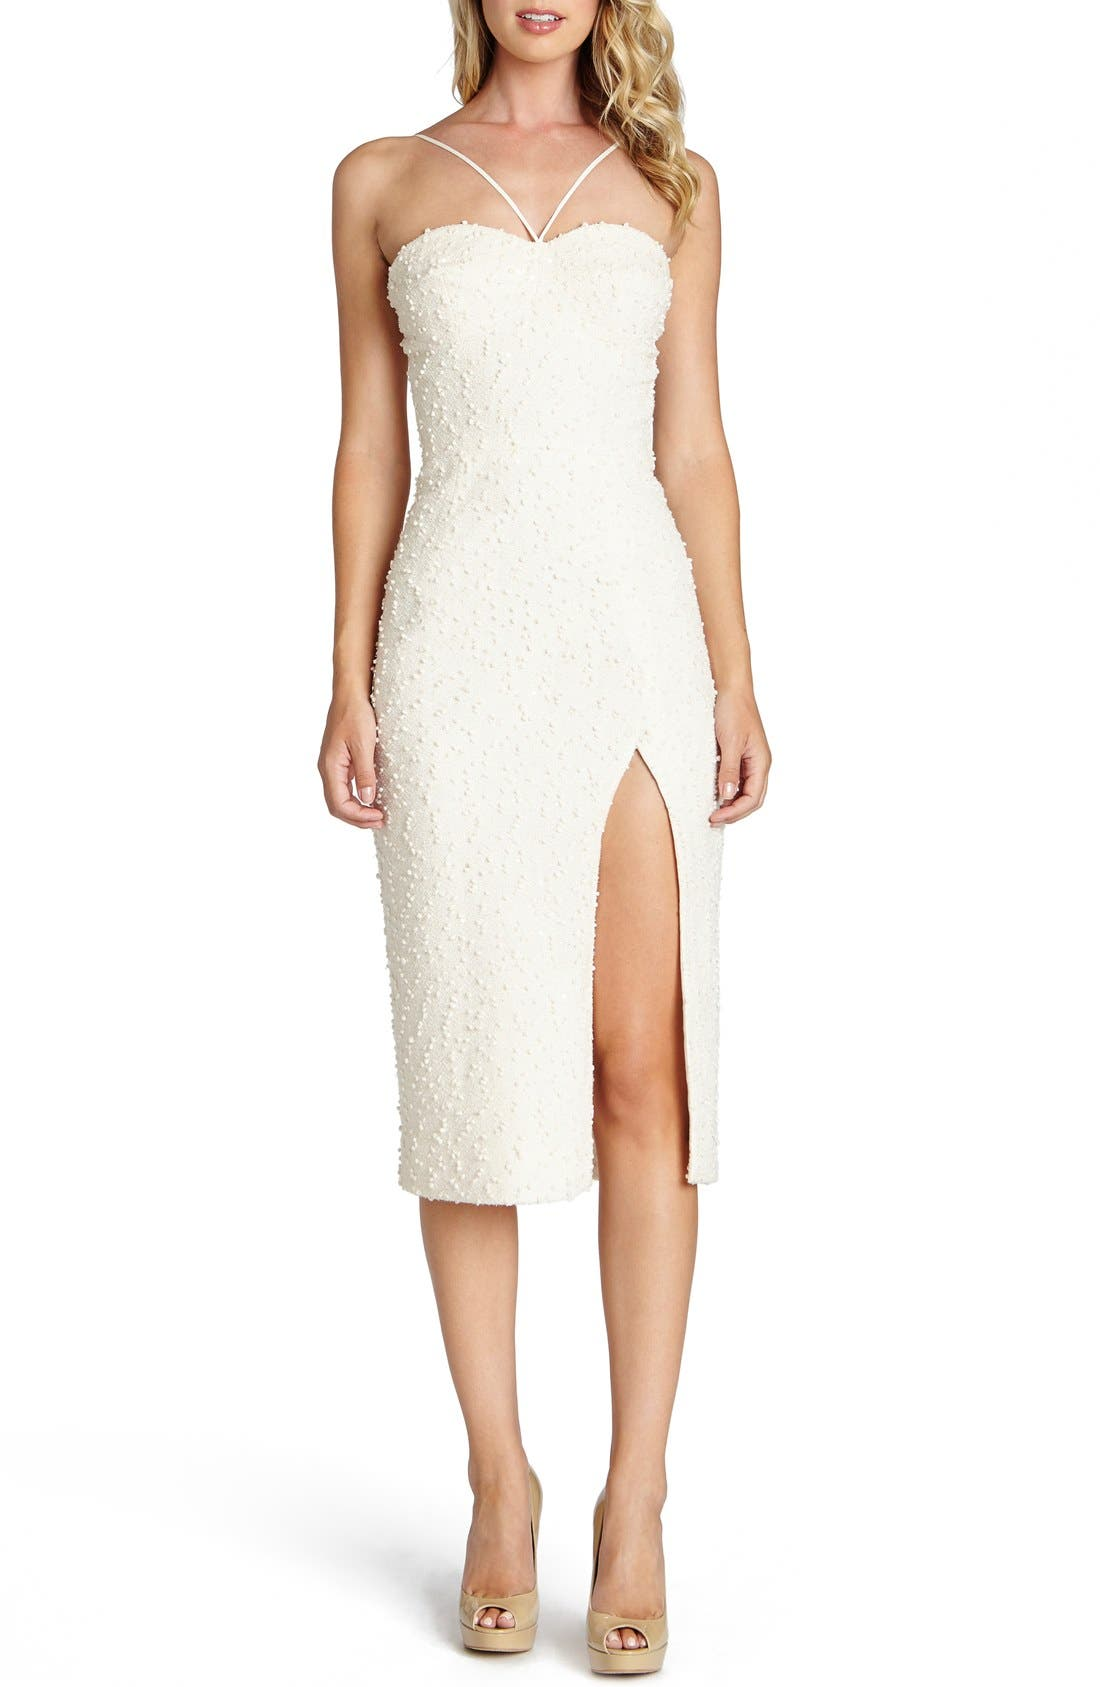 Alternate Image 1 Selected - Dress the Population 'Luciana' Textured Knit Sheath Dress